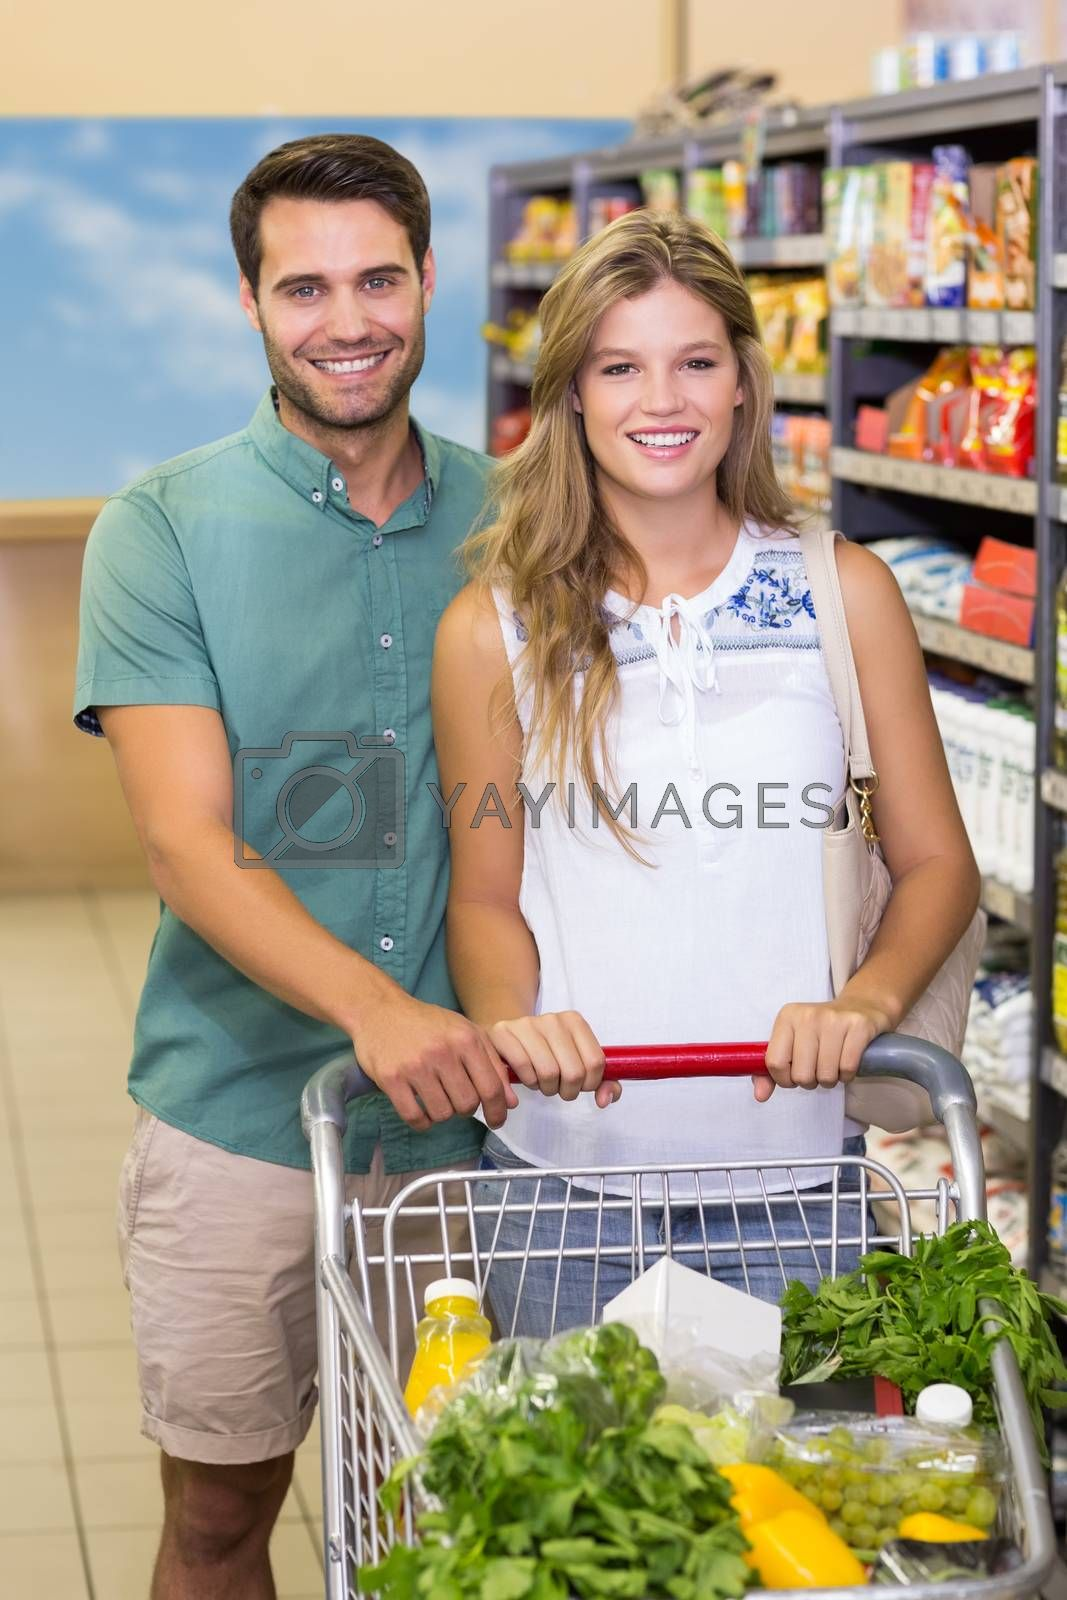 Royalty free image of Portrait of smiling bright couple buying products  by Wavebreakmedia